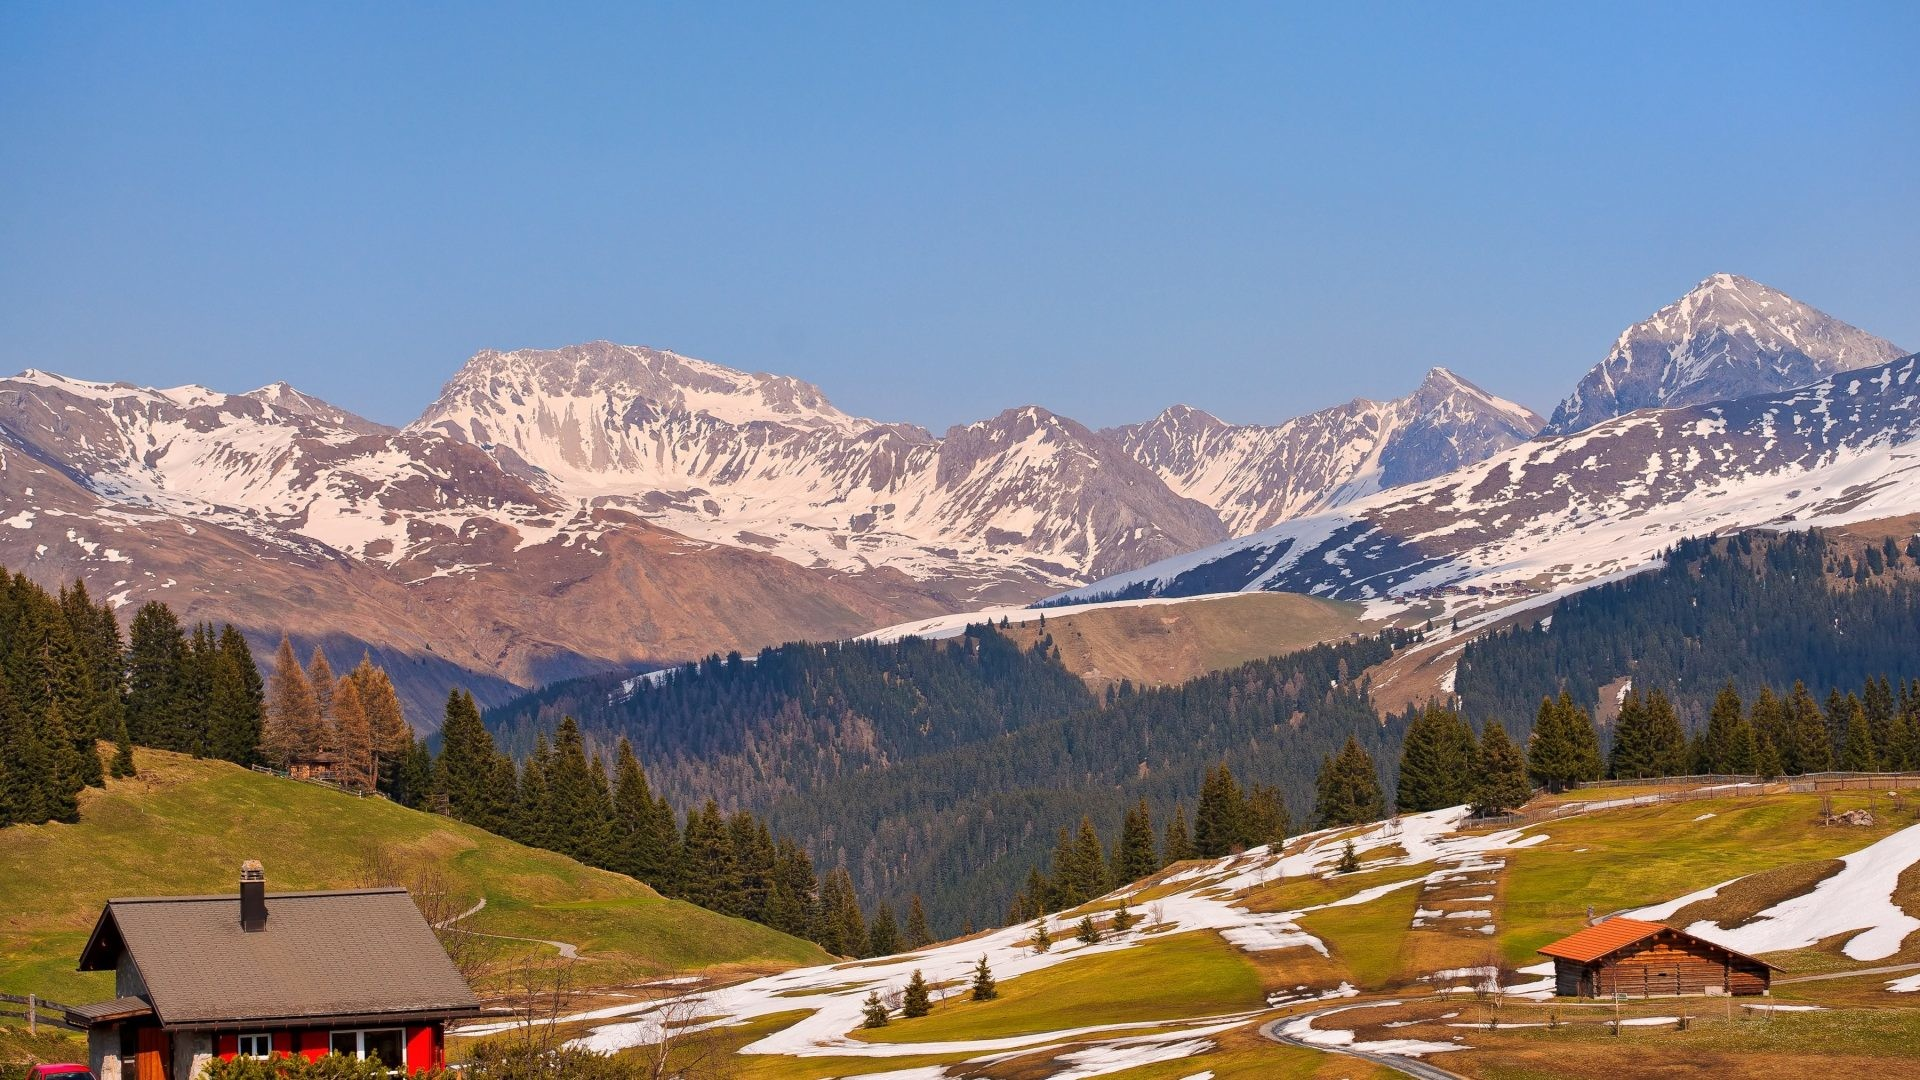 1920x1080 Davos Tag - Mountains Davos Grasslands Switzerland Nature Scenery Houses  Jakobshorn Wallpaper Cool for HD 16